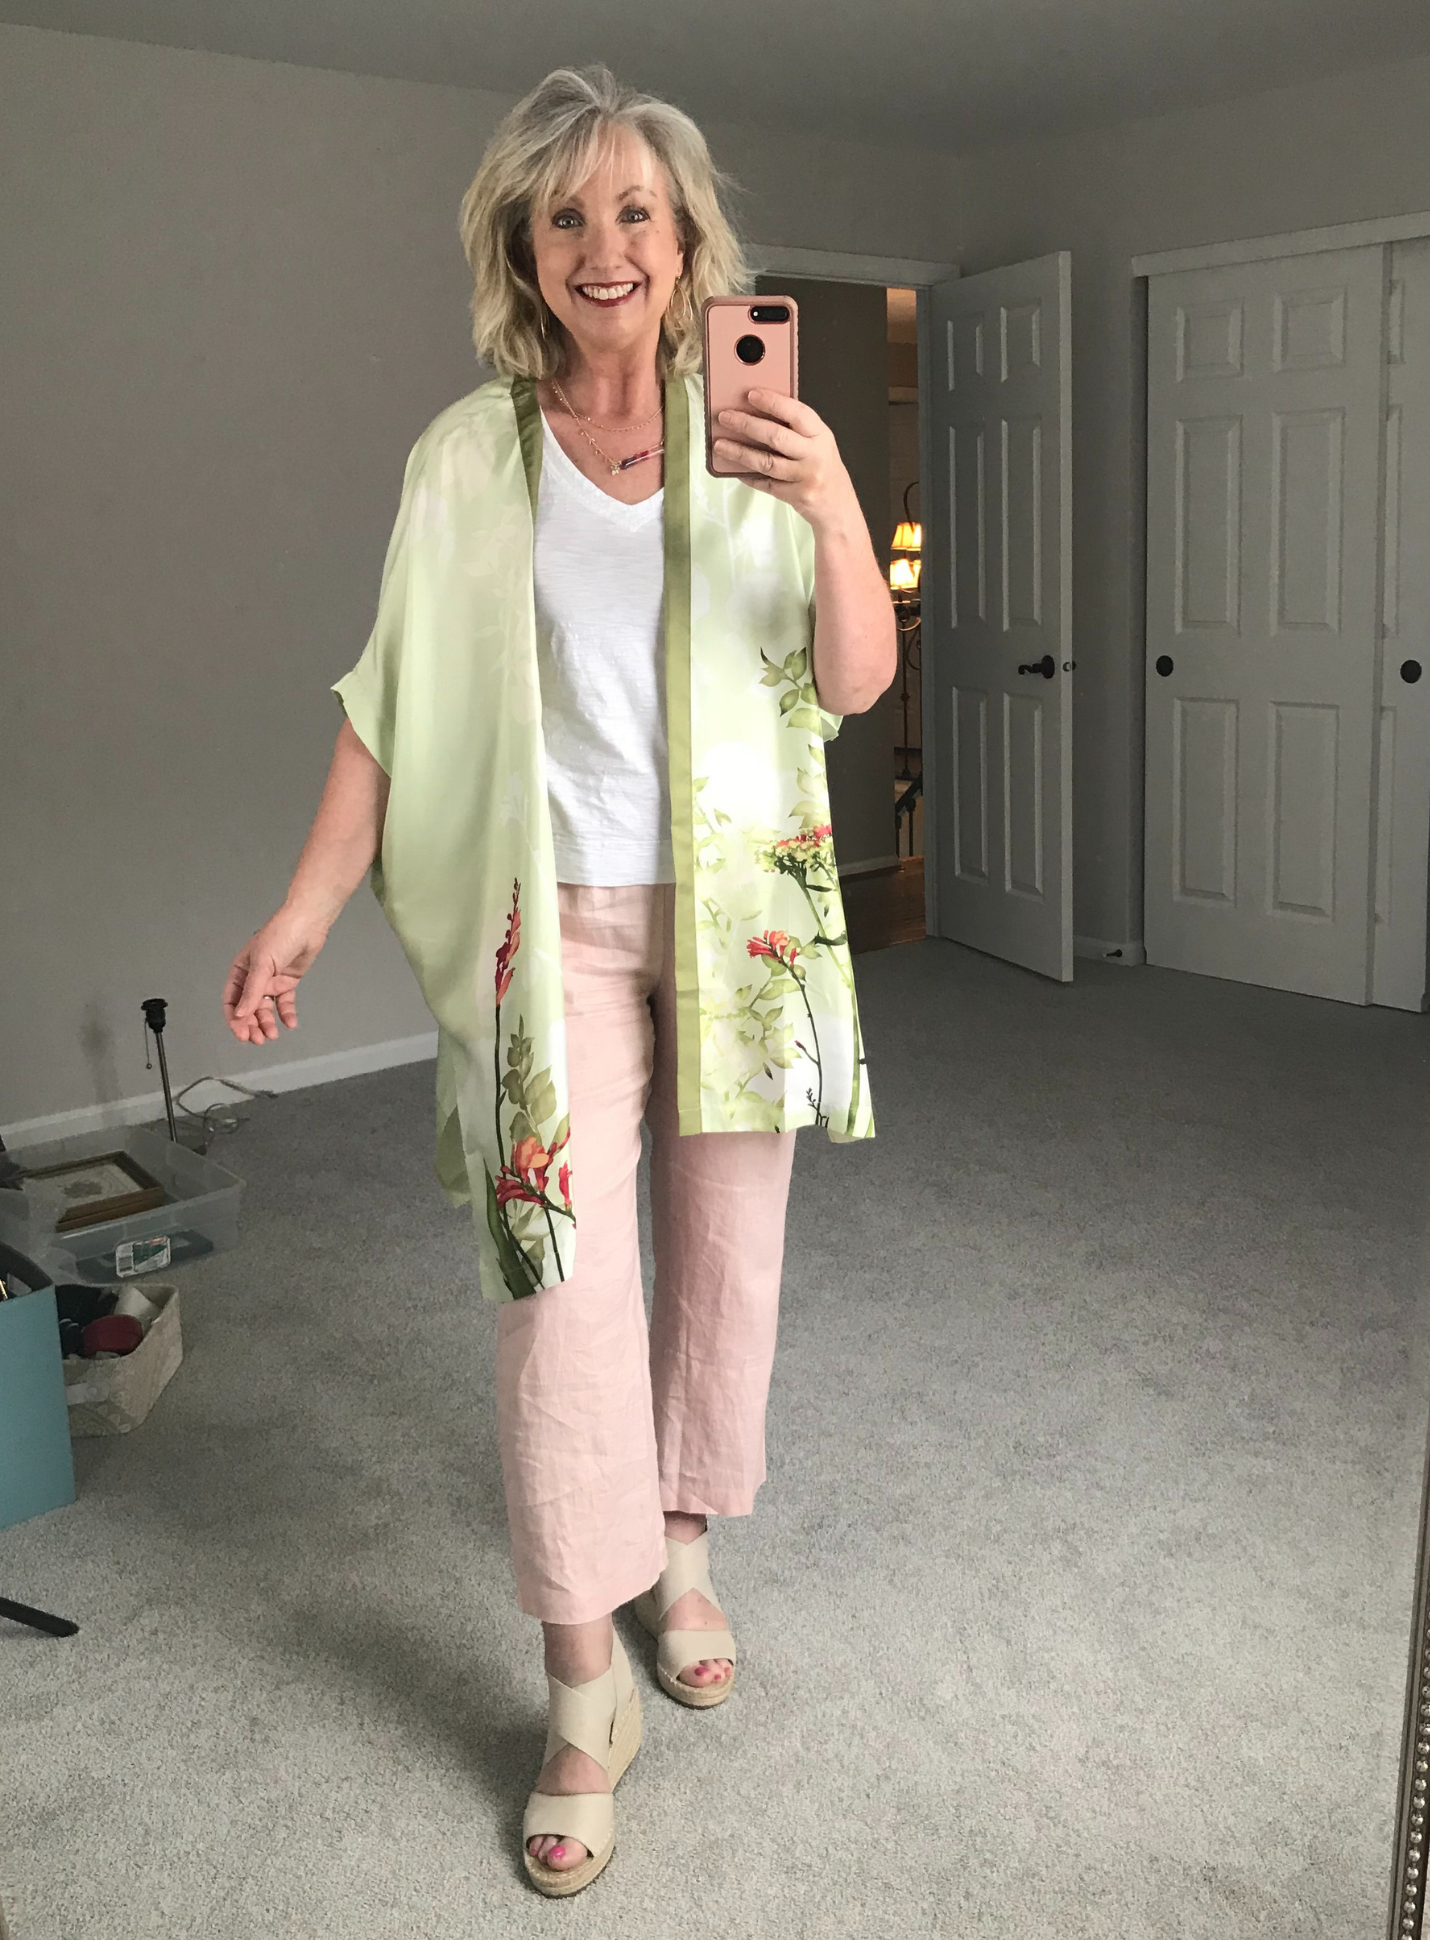 How I Really Dressed for My Day 019